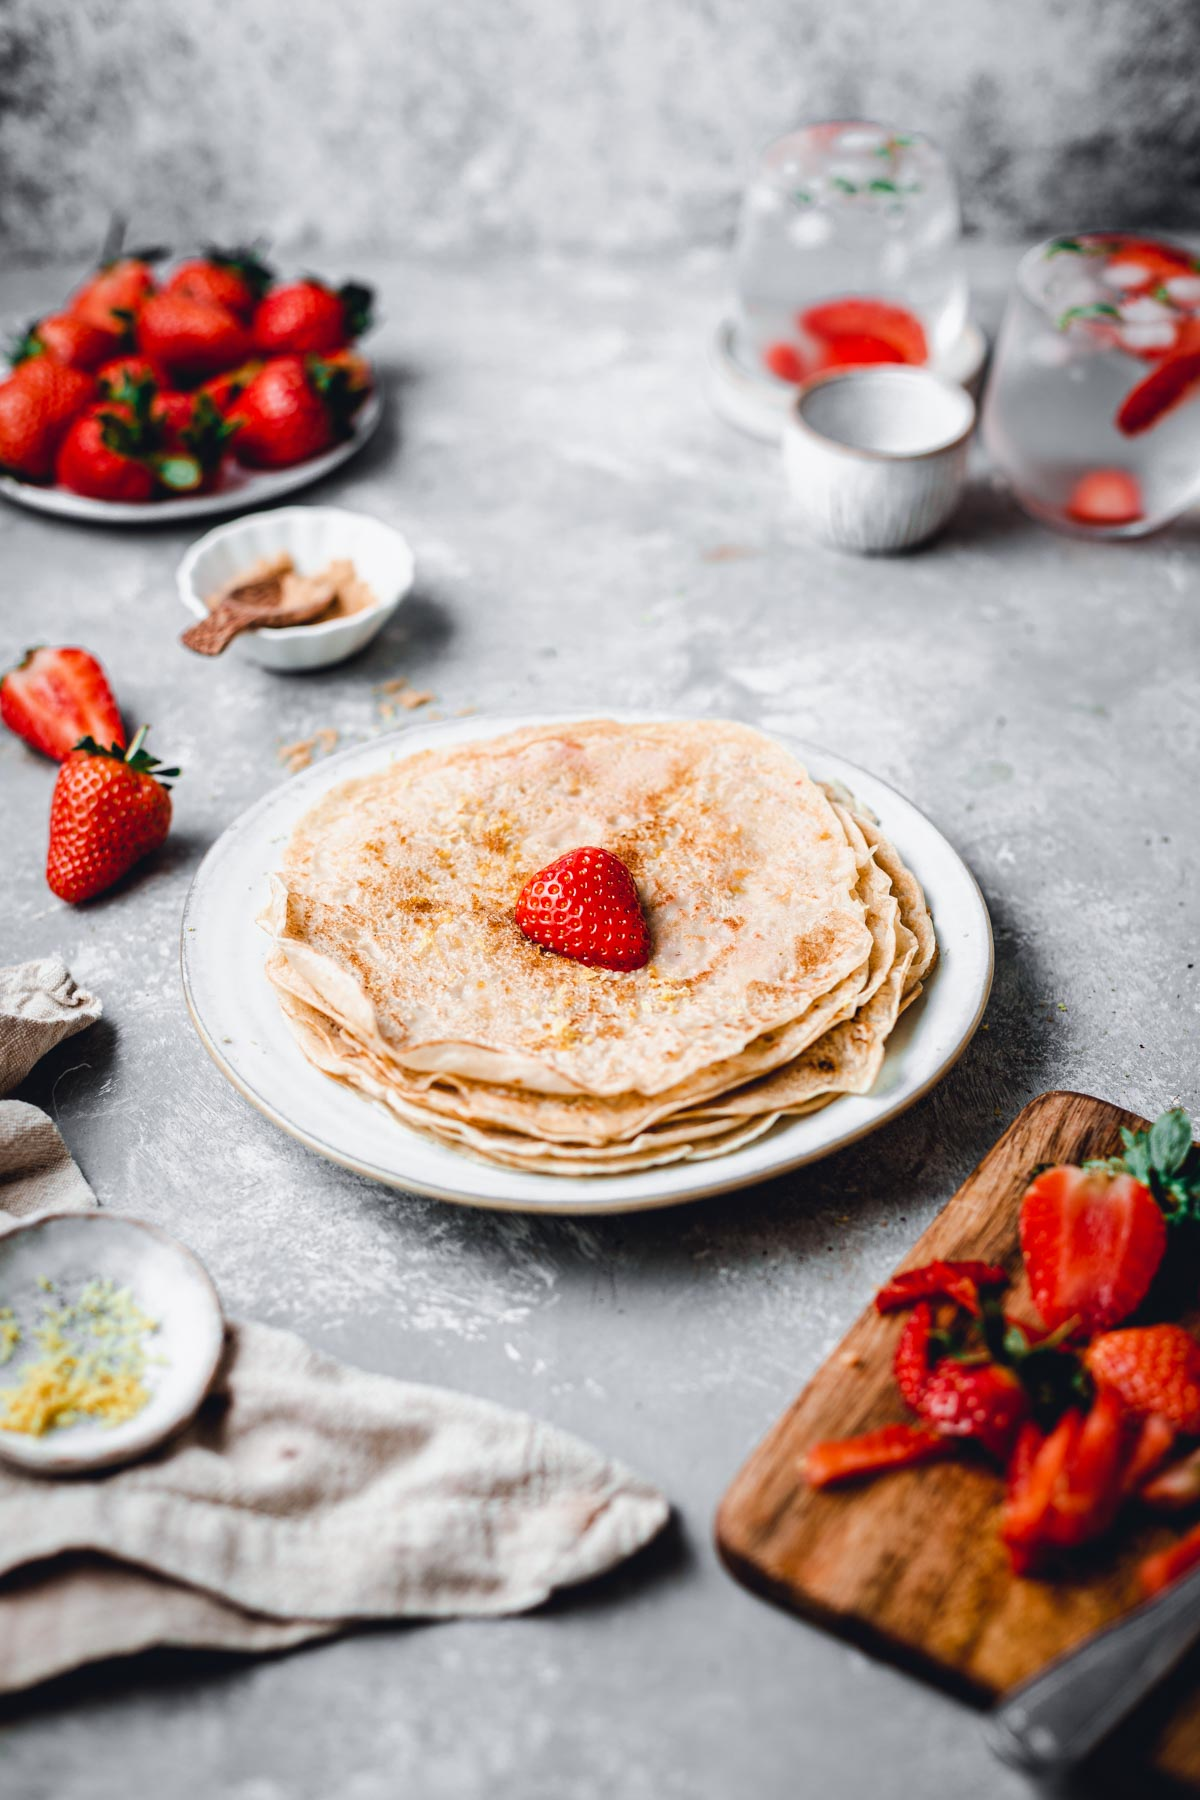 A side view of a almond milk crepes stacked on a round plate with a single strawberryb on top.